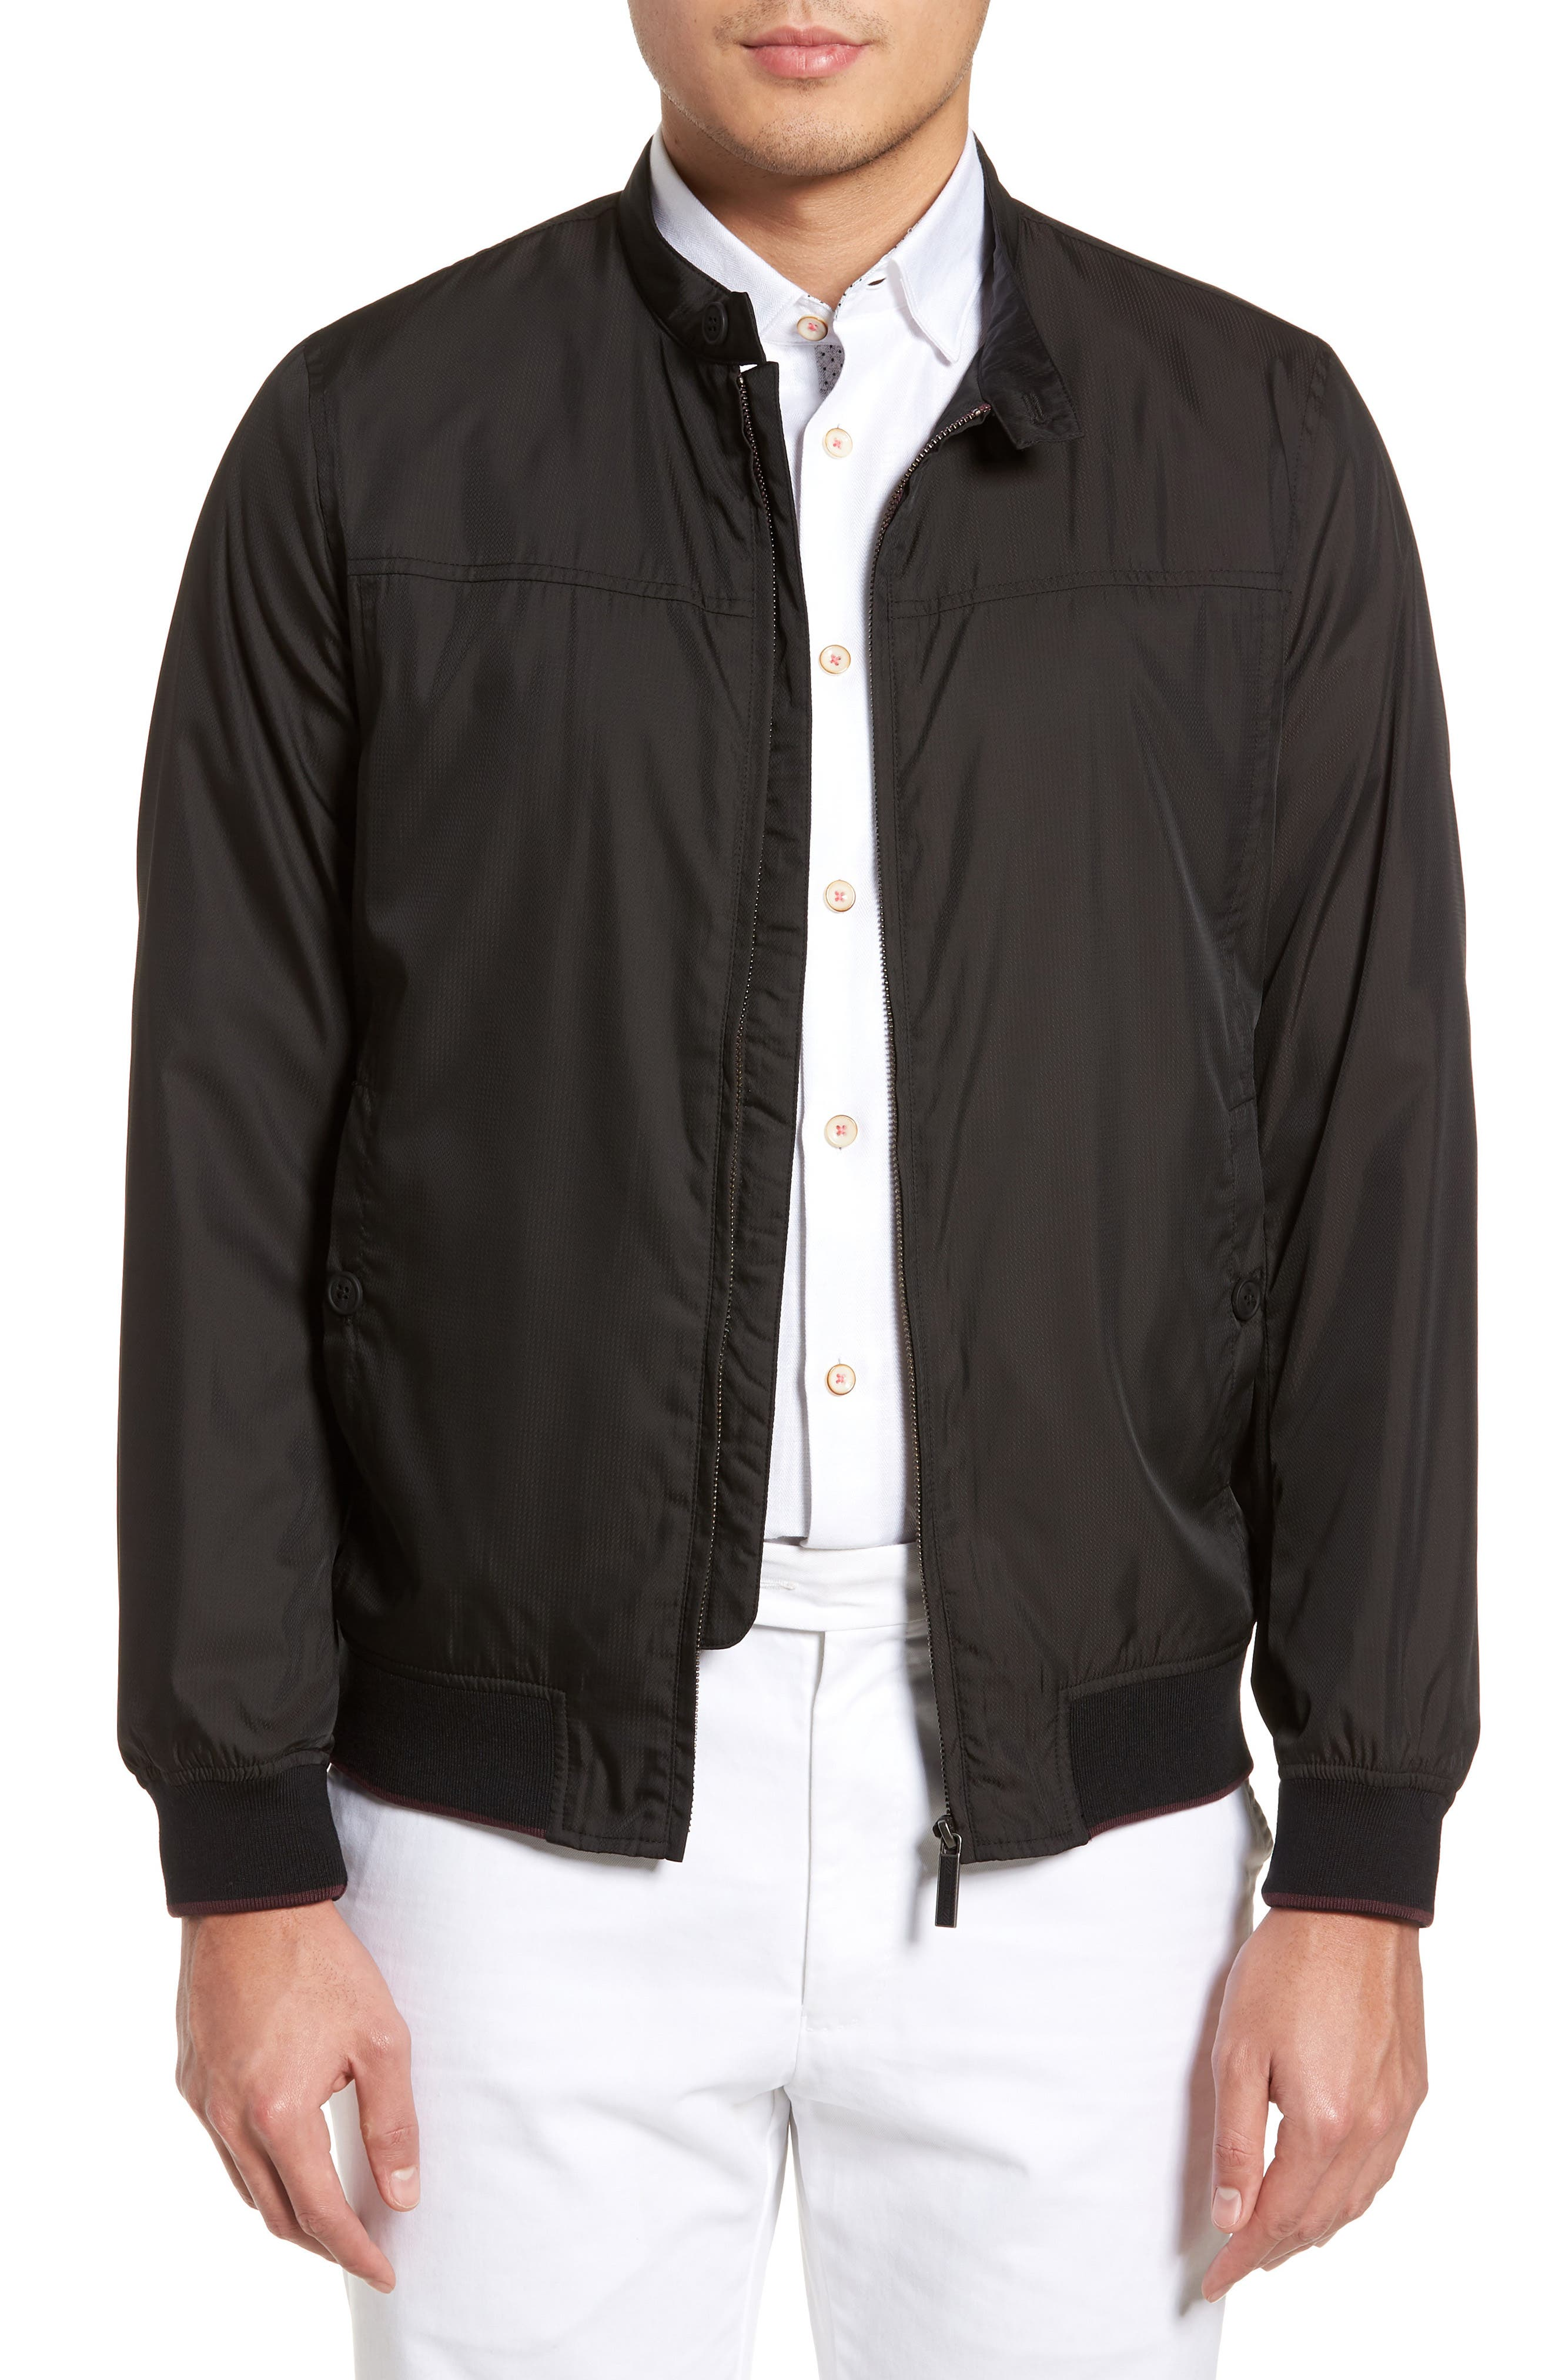 Calgar Nylon Bomber Jacket,                         Main,                         color,